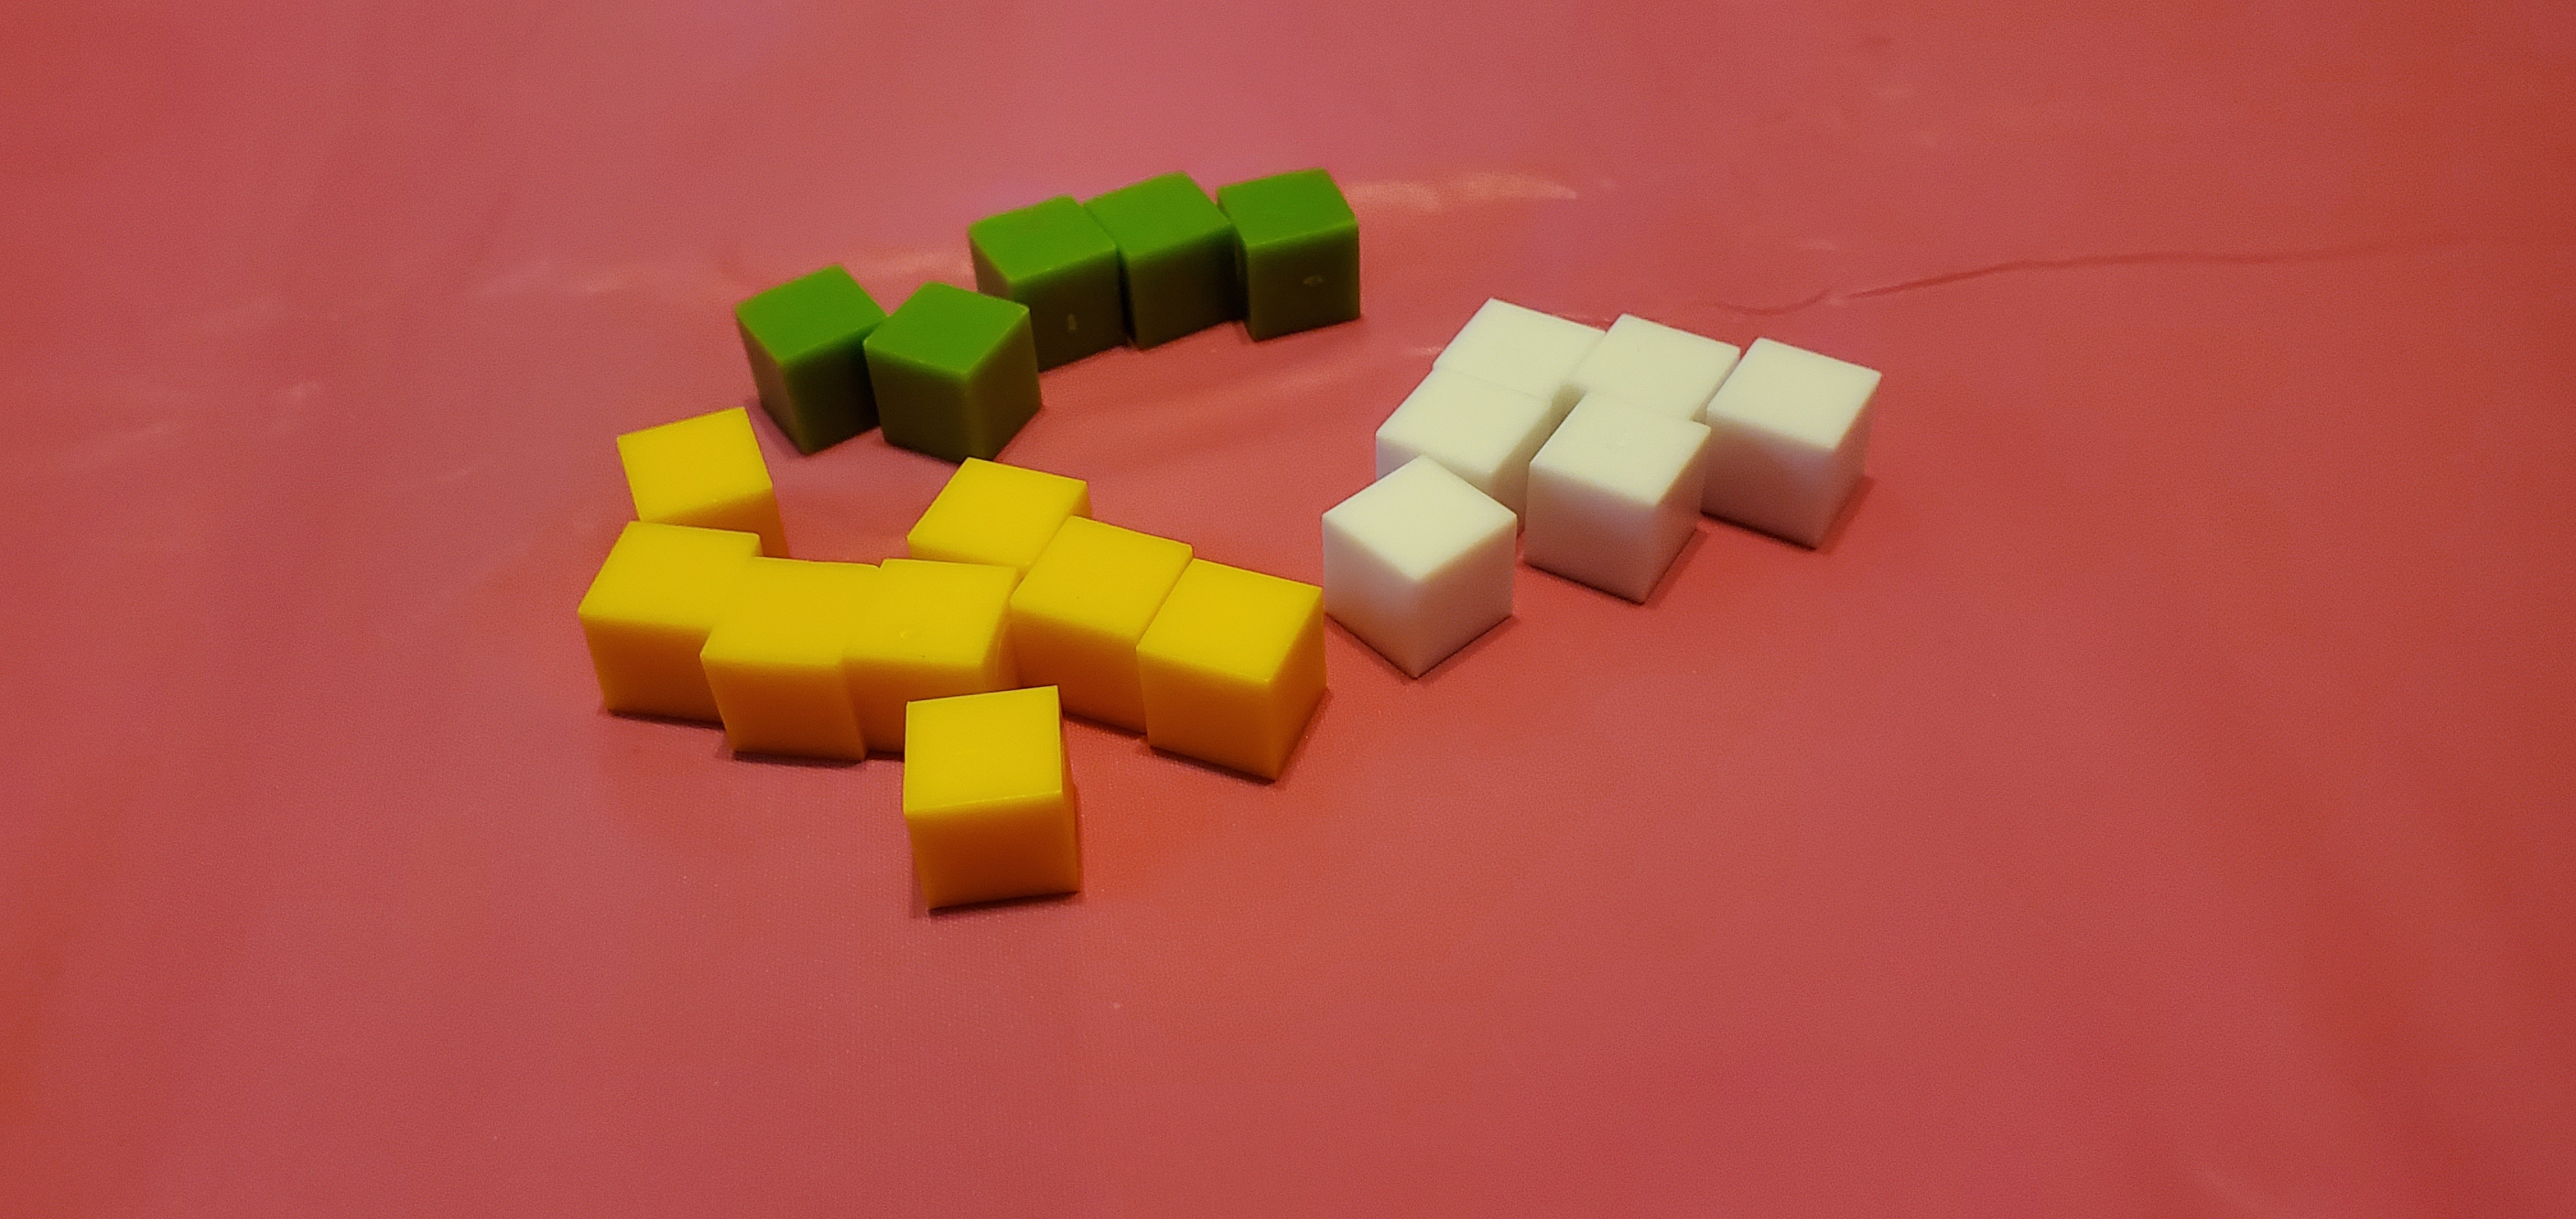 Selection of acrylic gaming cubes.